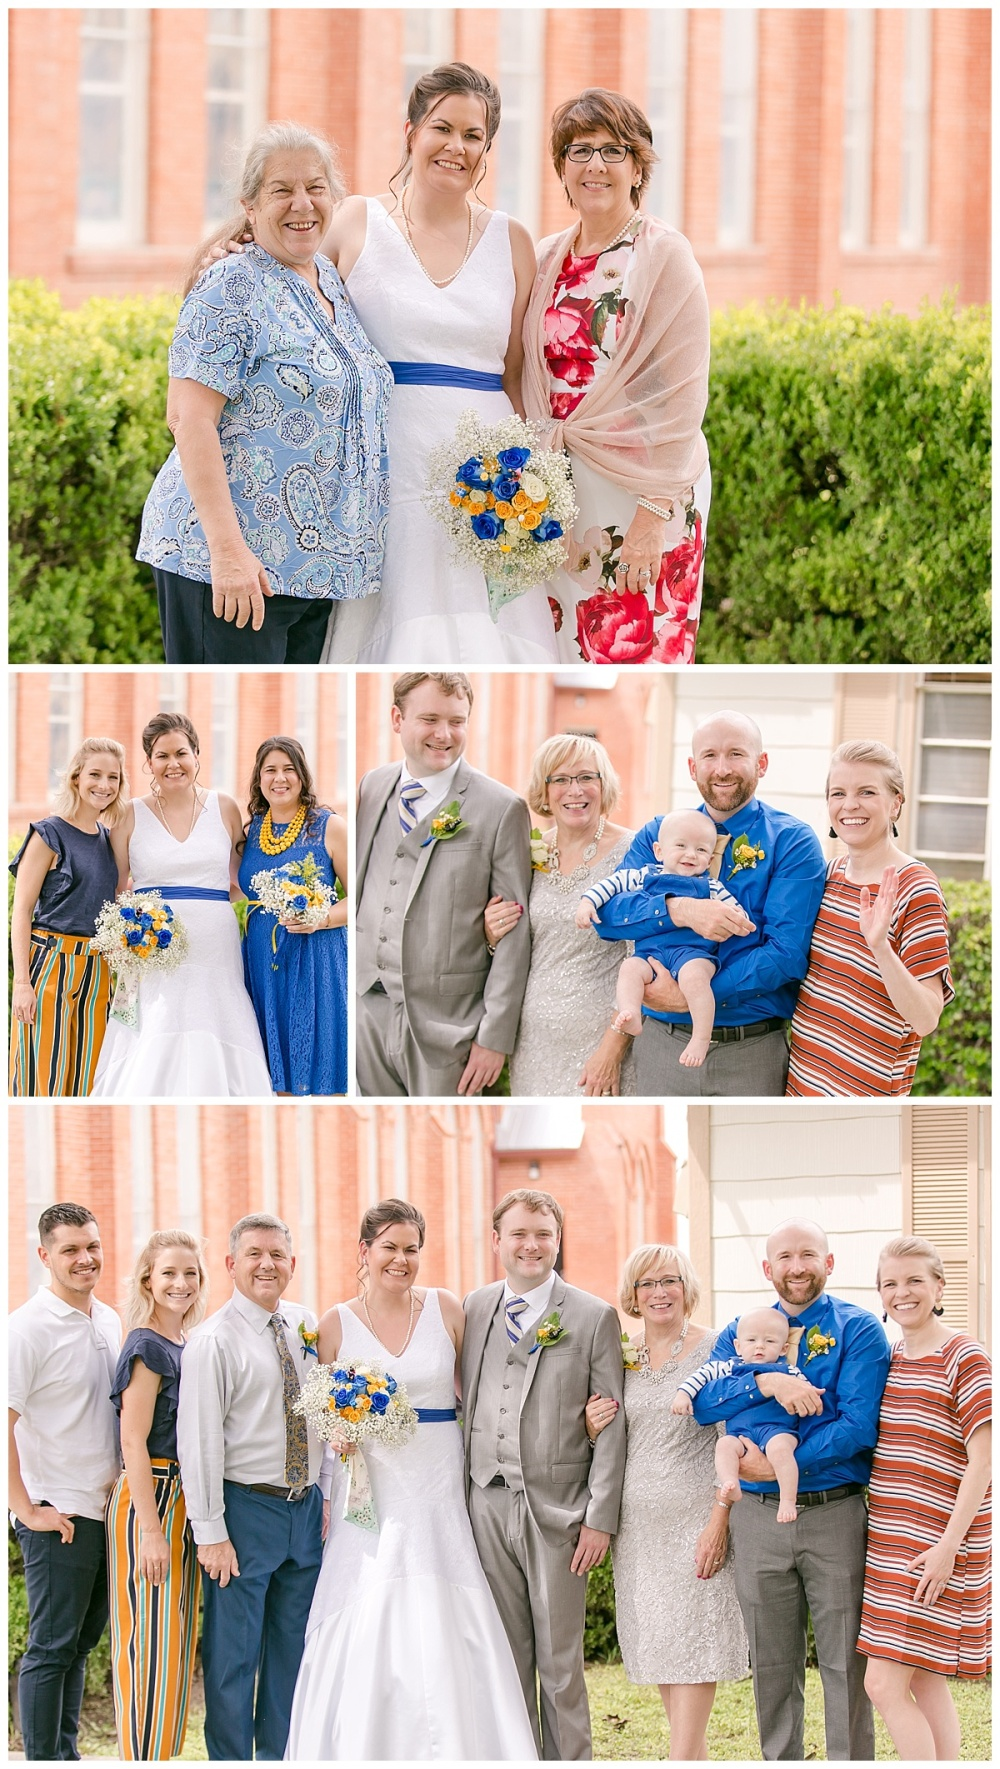 Texas-Wedding-Photographer-La-Coste-Our-Lady-Of-Grace-Church-Bride-Groom-Lego-Theme-Carly-Barton-Photography_0039.jpg